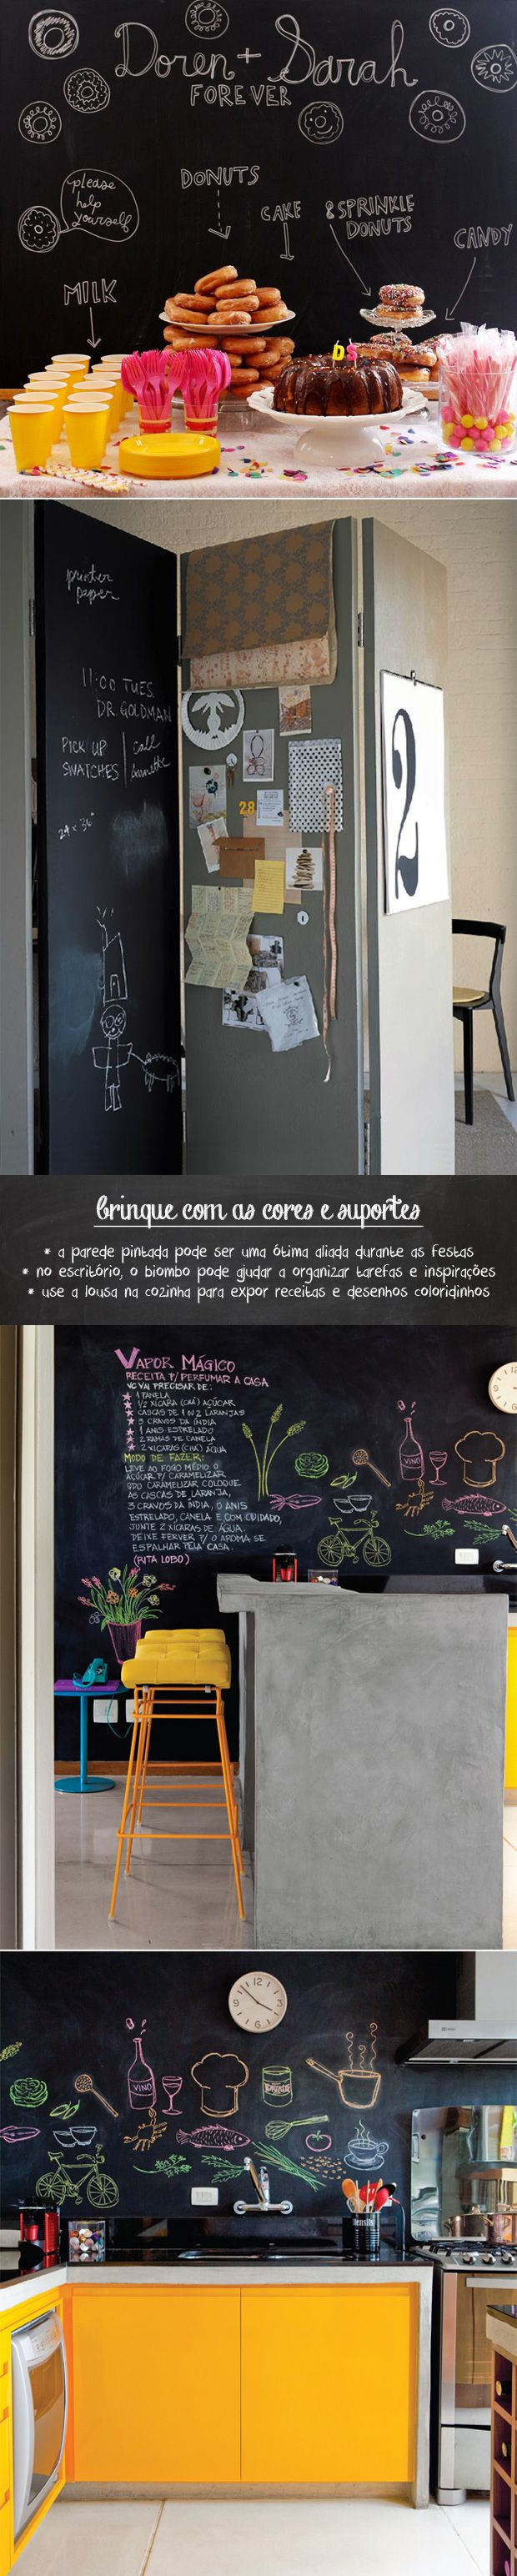 Retractable wall and blackboard paint